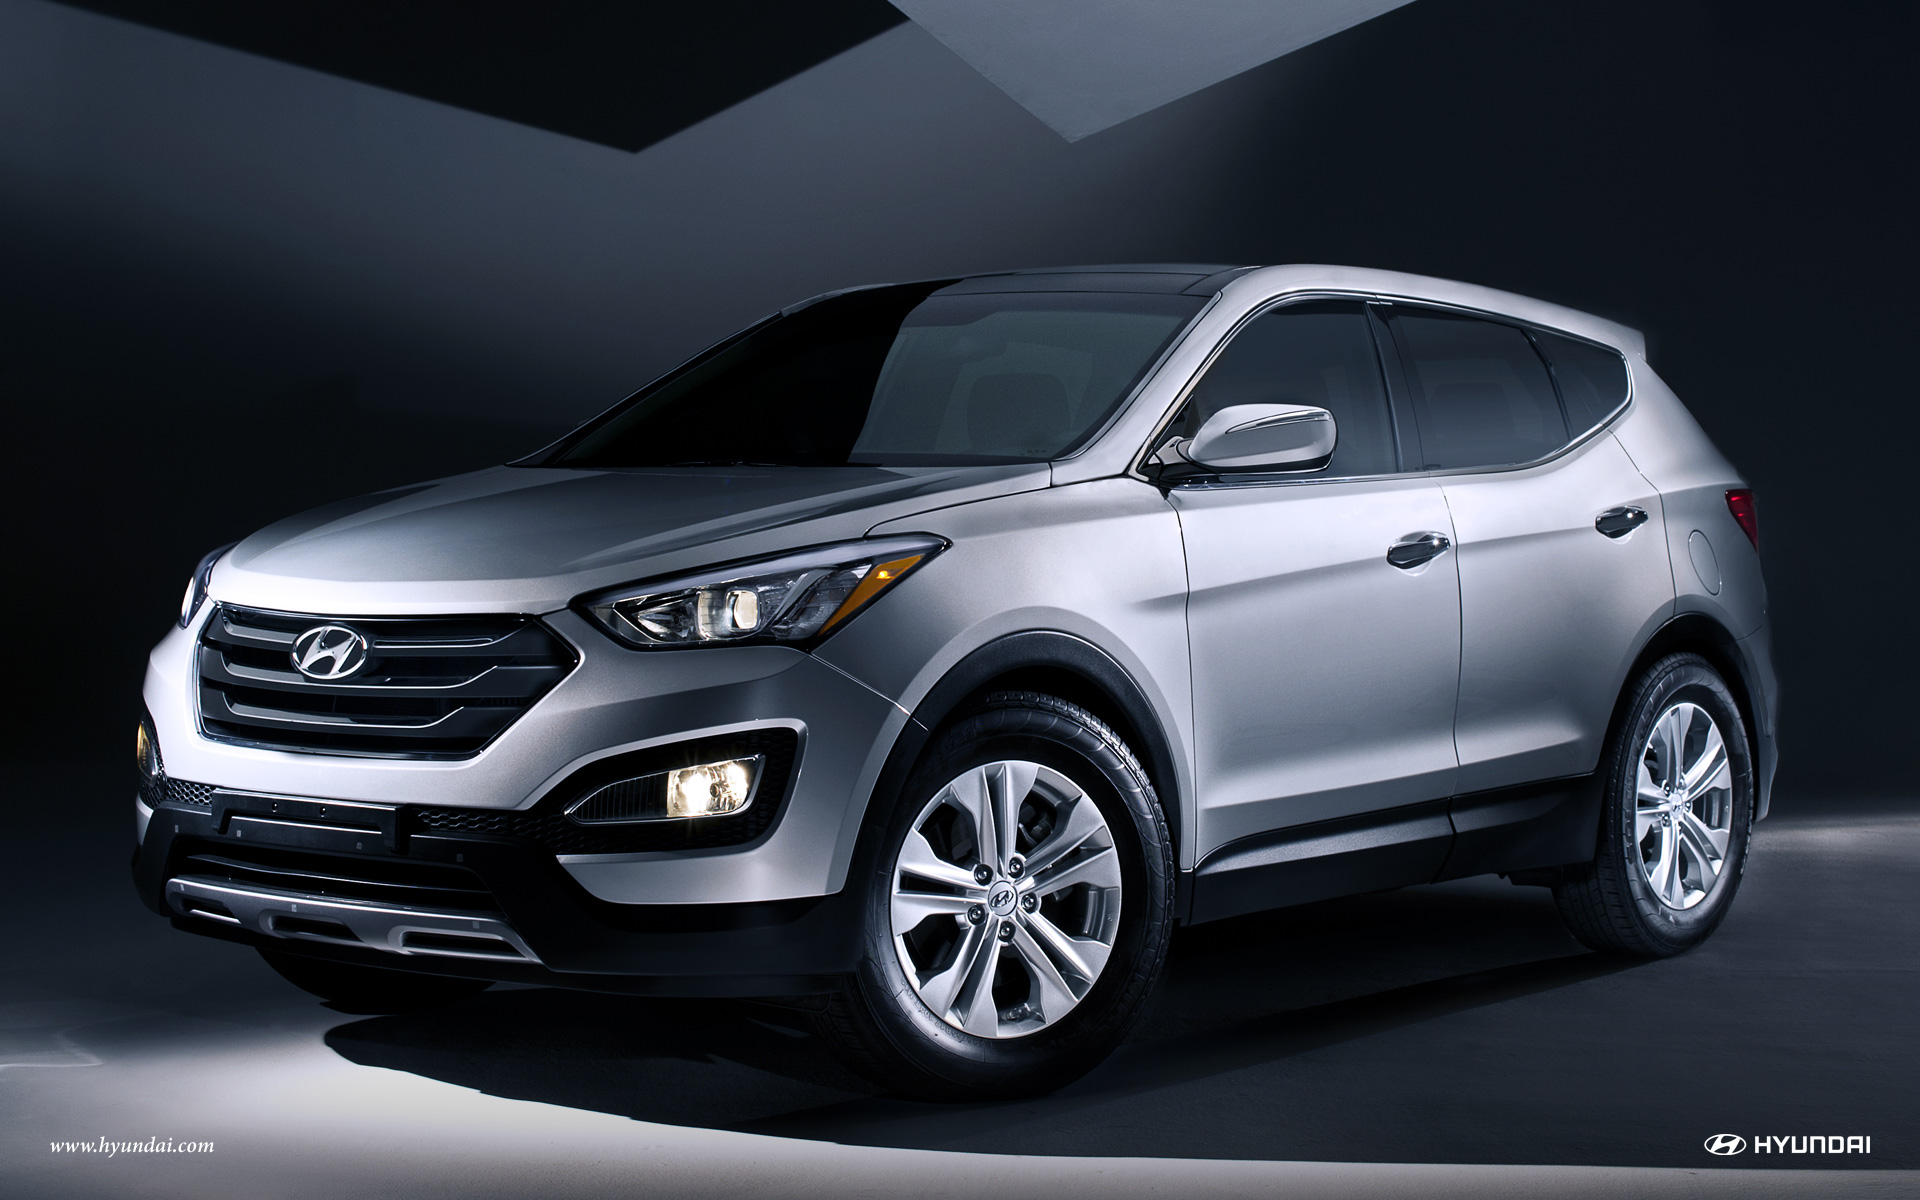 2013 hyundai santa fe sport test drive crossover suv autos post. Black Bedroom Furniture Sets. Home Design Ideas